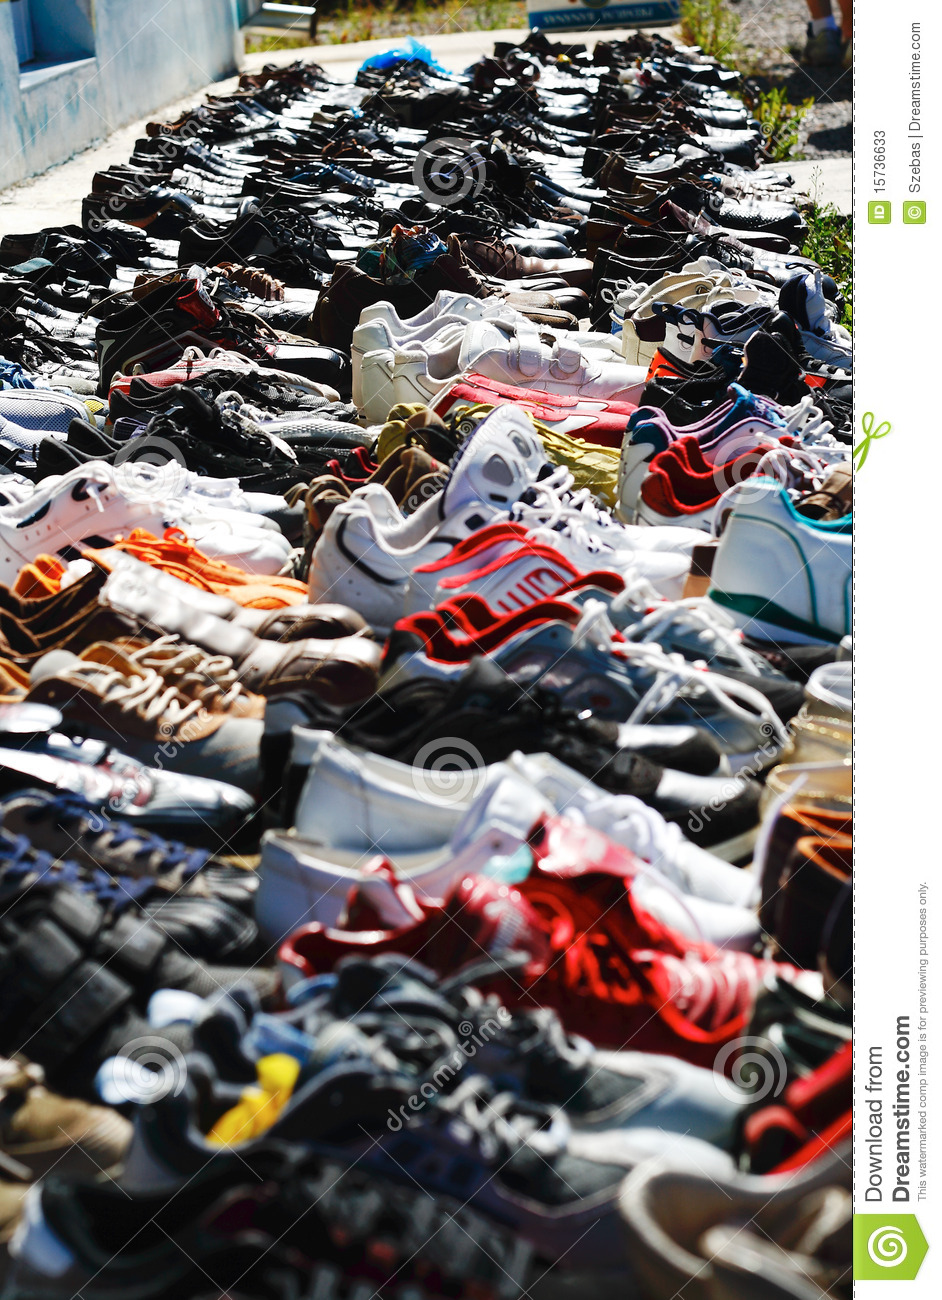 Chaussures de march aux puces photos stock image 15736633 - Marche au puce paris vetement ...